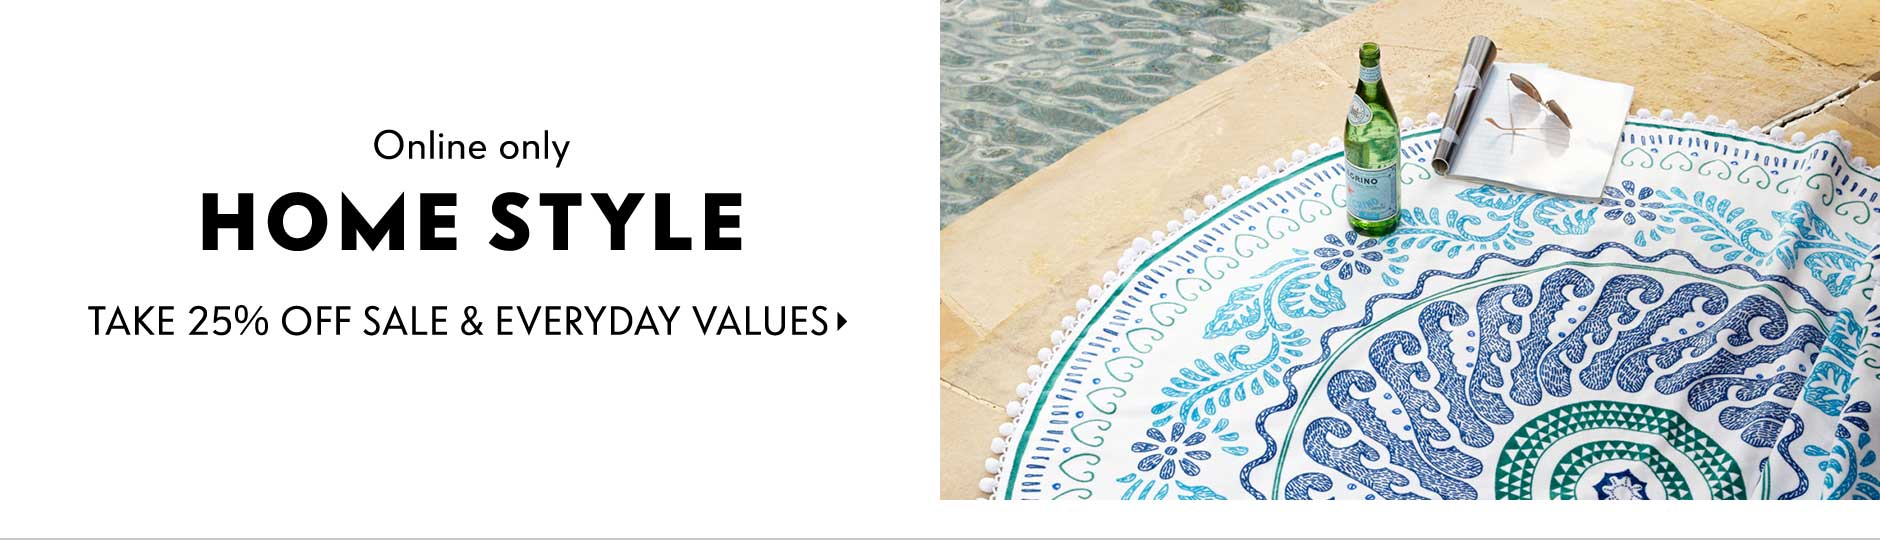 Online only - Home Style: take 25% off Sale & Everyday Values